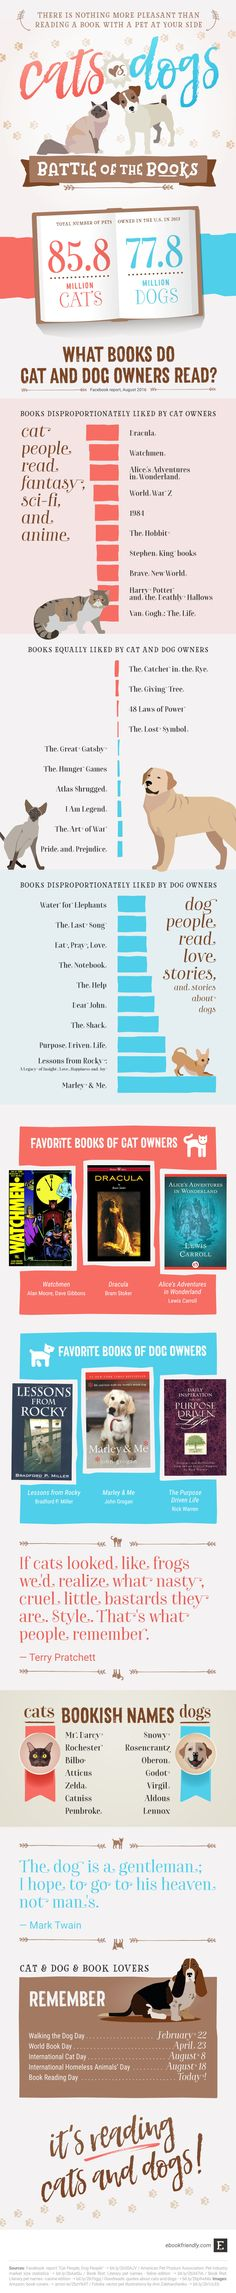 Cats and dogs and books - the new infographic shows favorite books of cat vs…